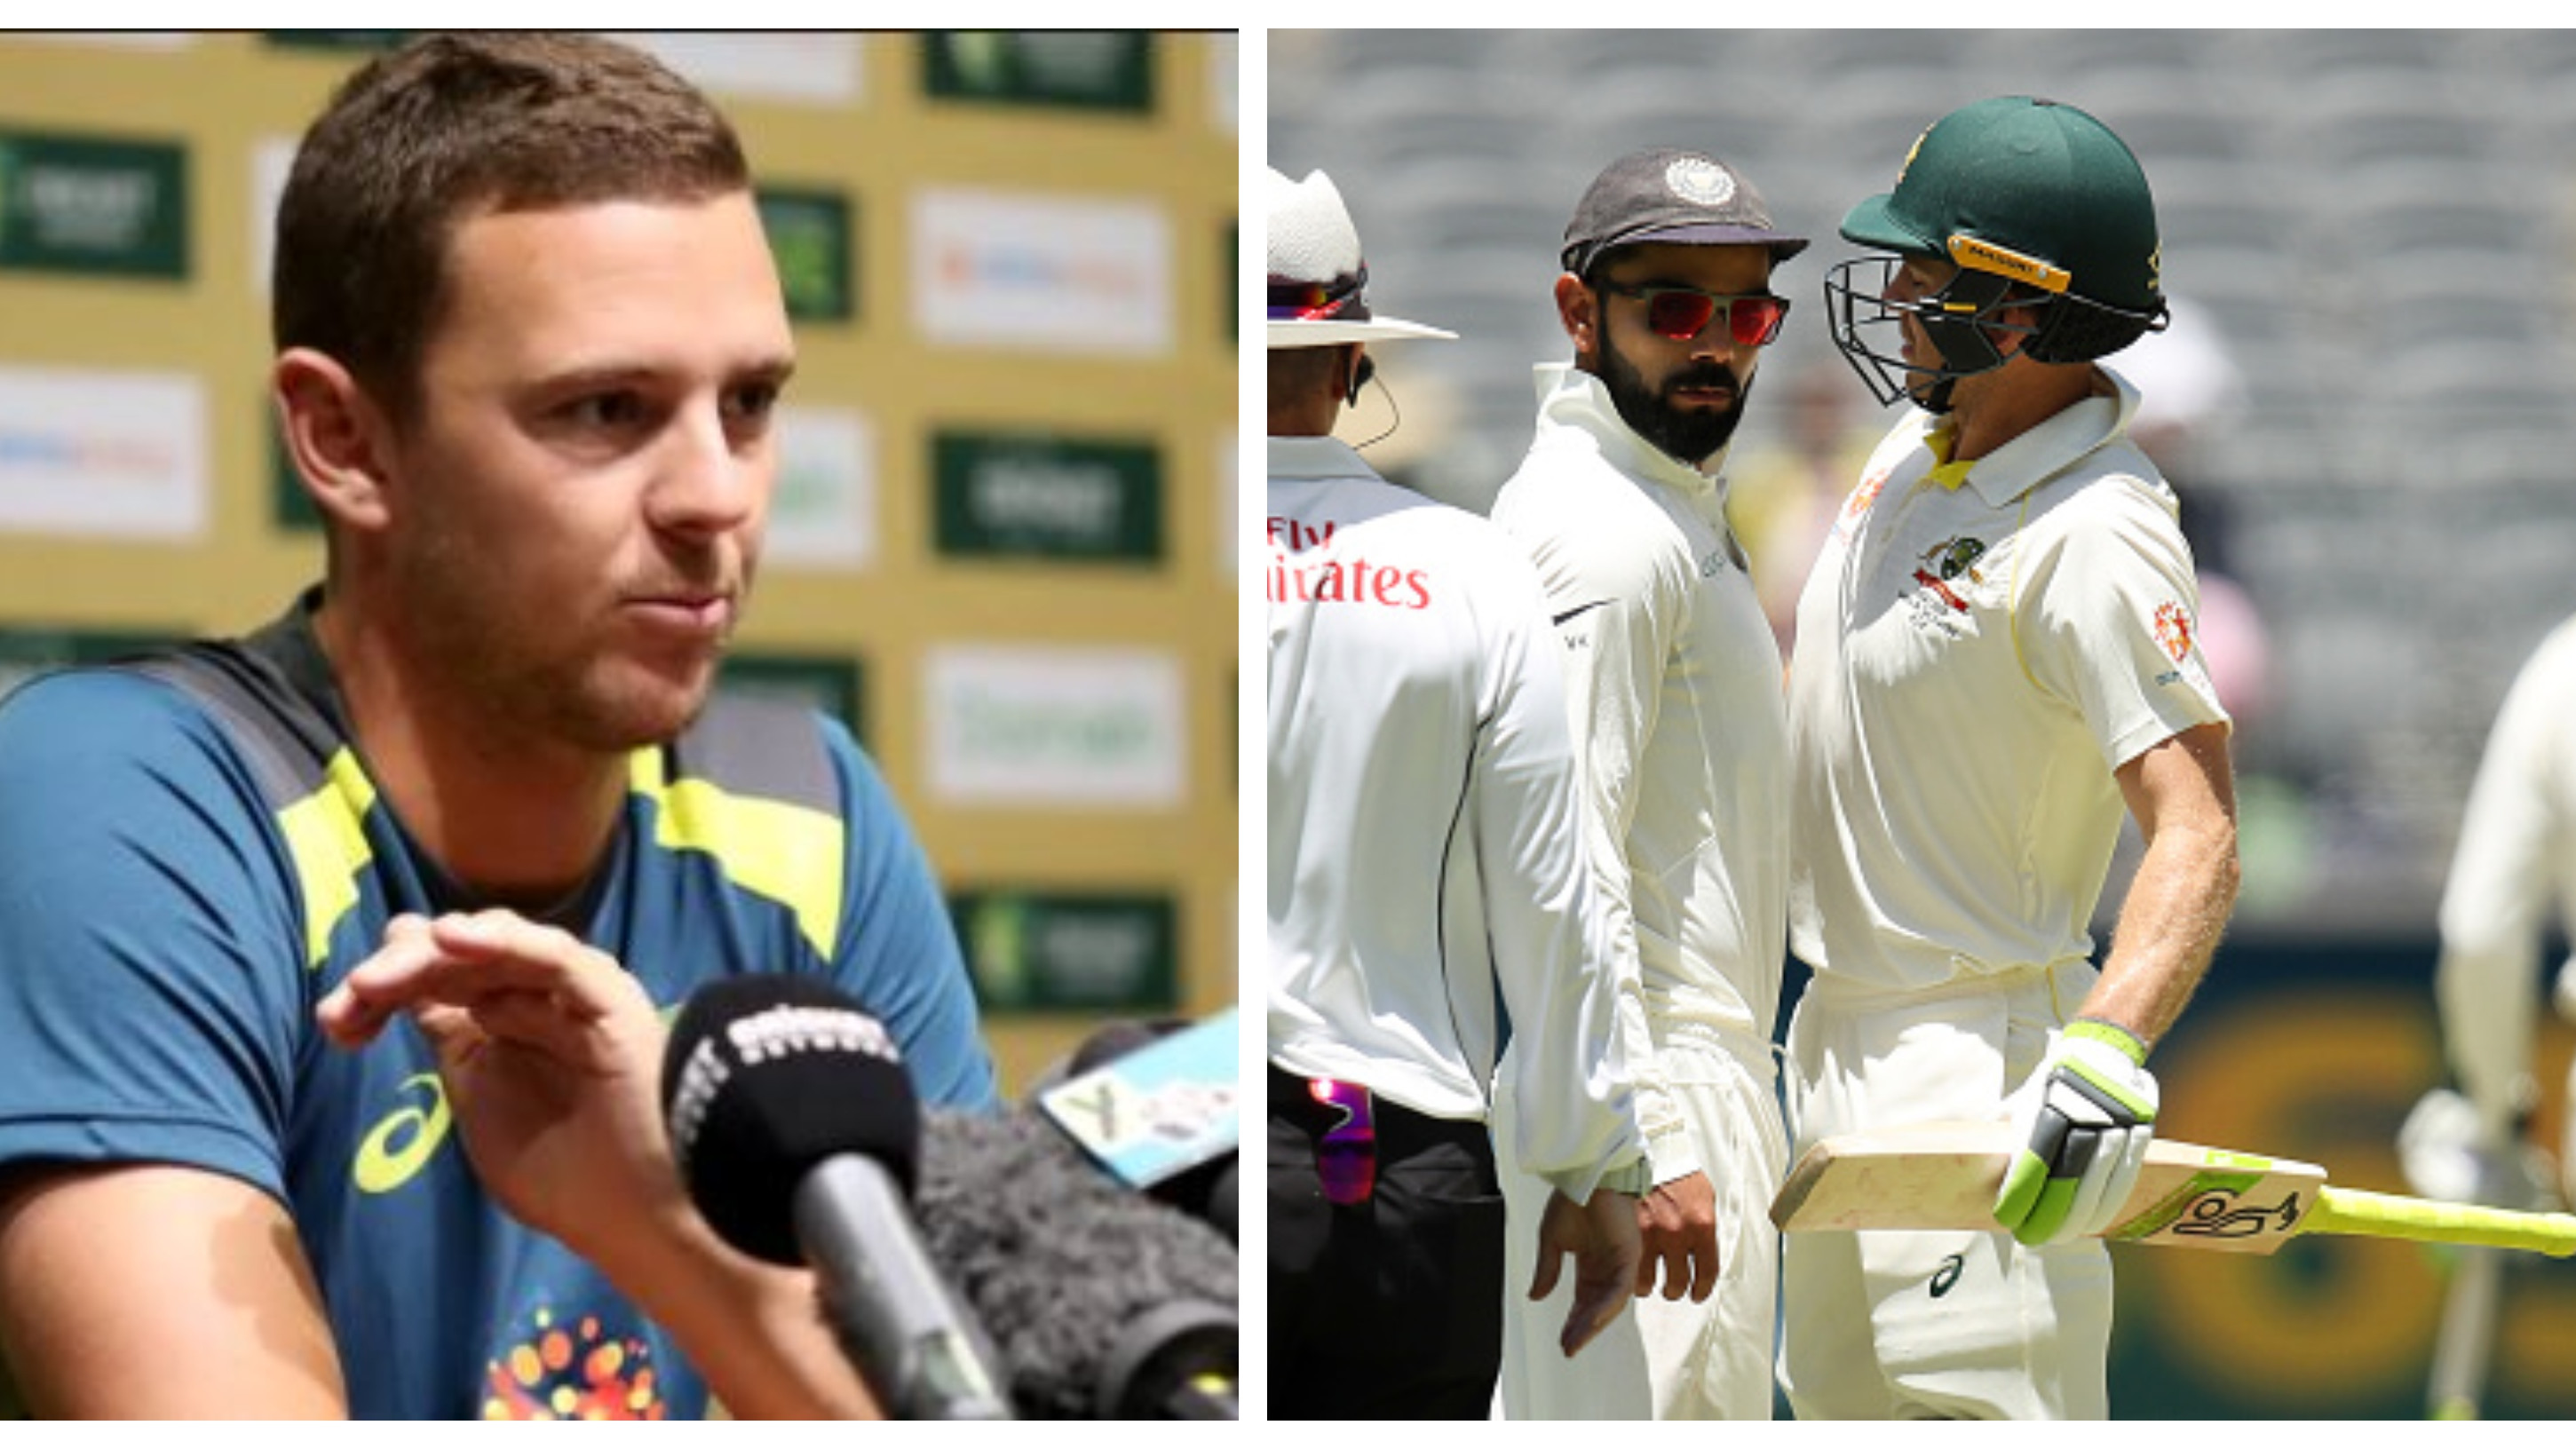 AUS v IND 2018-19: It was all in good spirits between Virat and Paine, says Josh Hazlewood